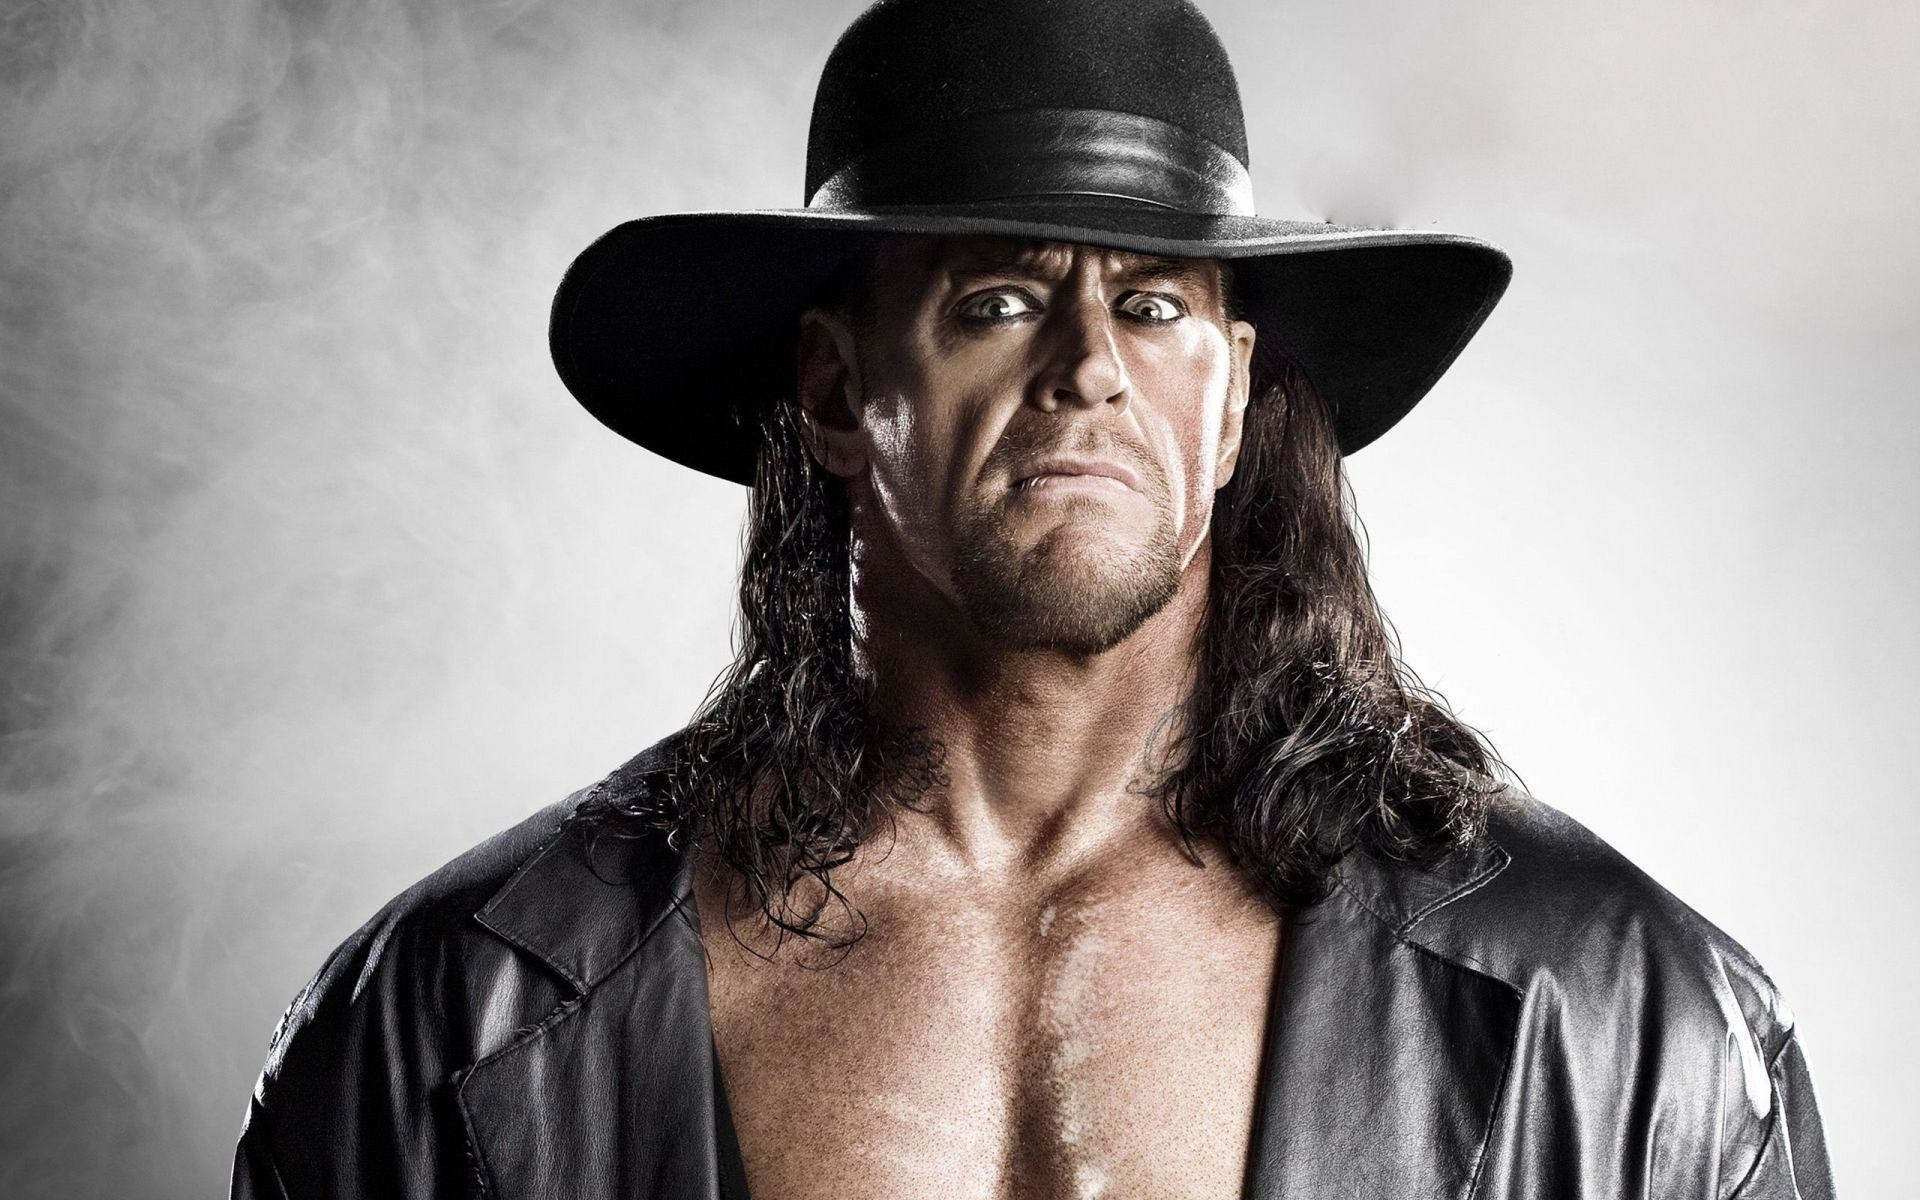 1920x1200 Undertaker Wallpaper - HD Wallpaper Expert